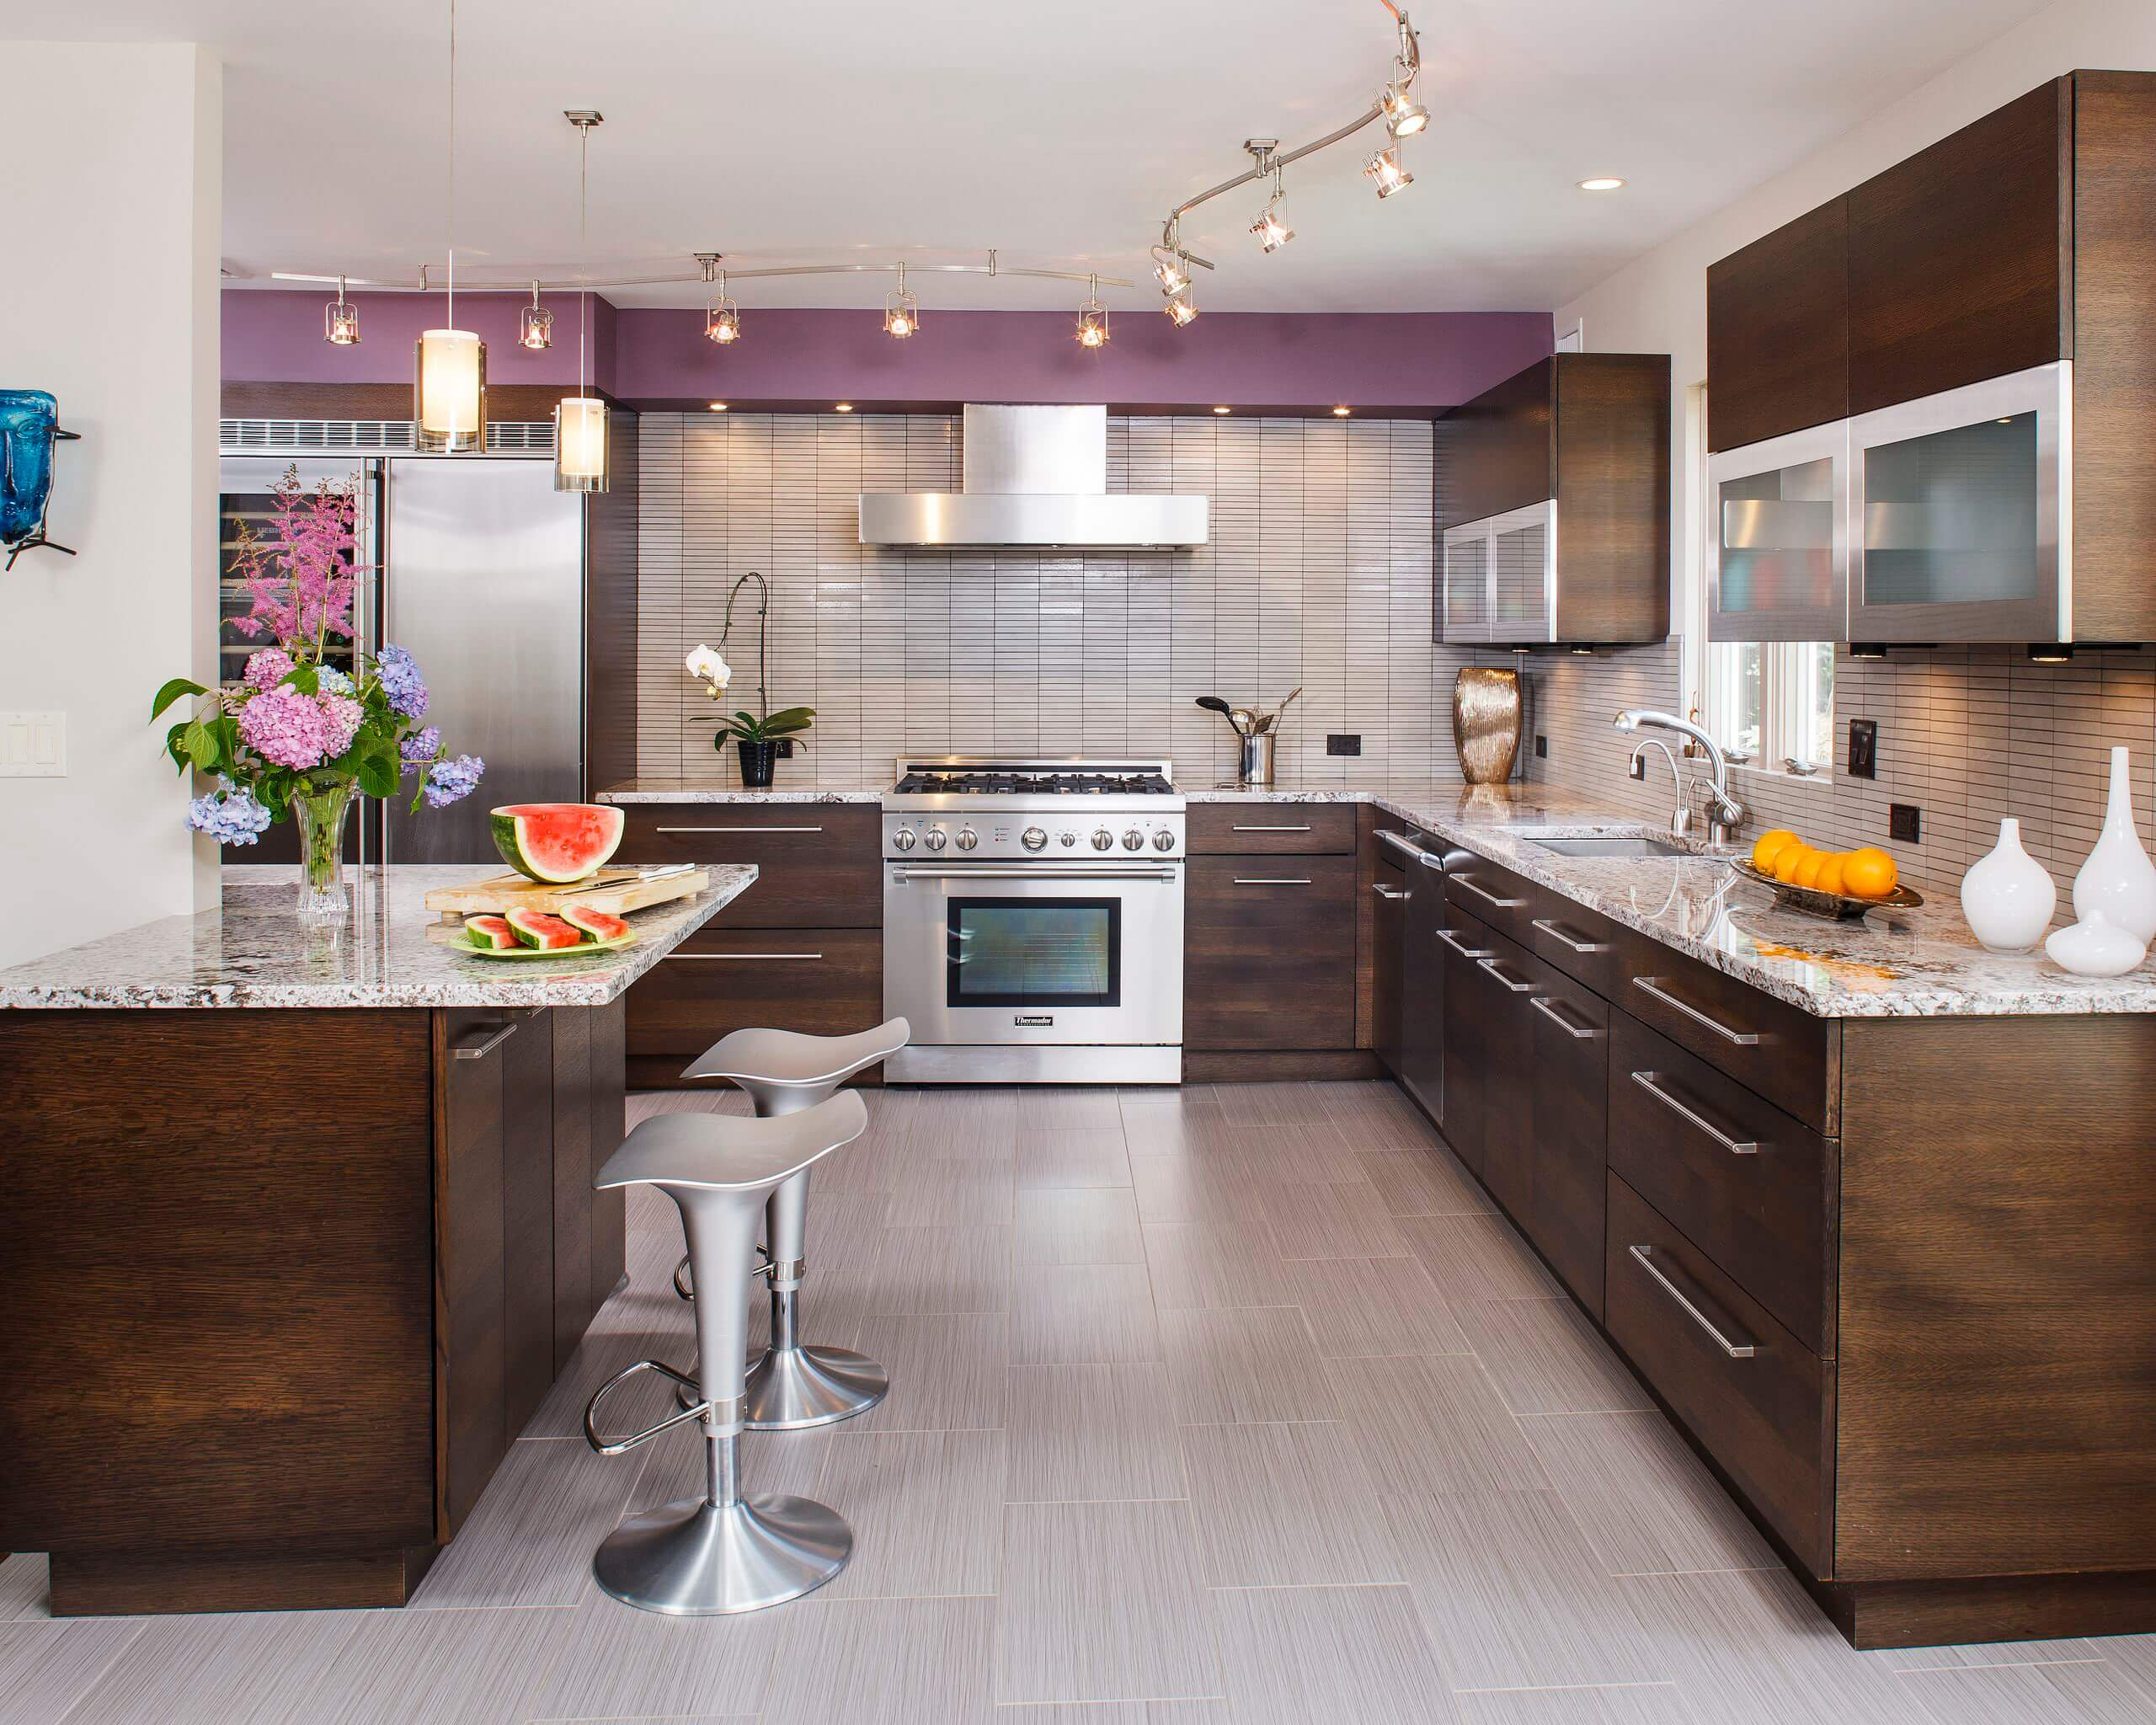 Kitchen - contemporary kitchen idea in New York with flat-panel cabinets, dark wood cabinets, beige backsplash and stainless steel appliances